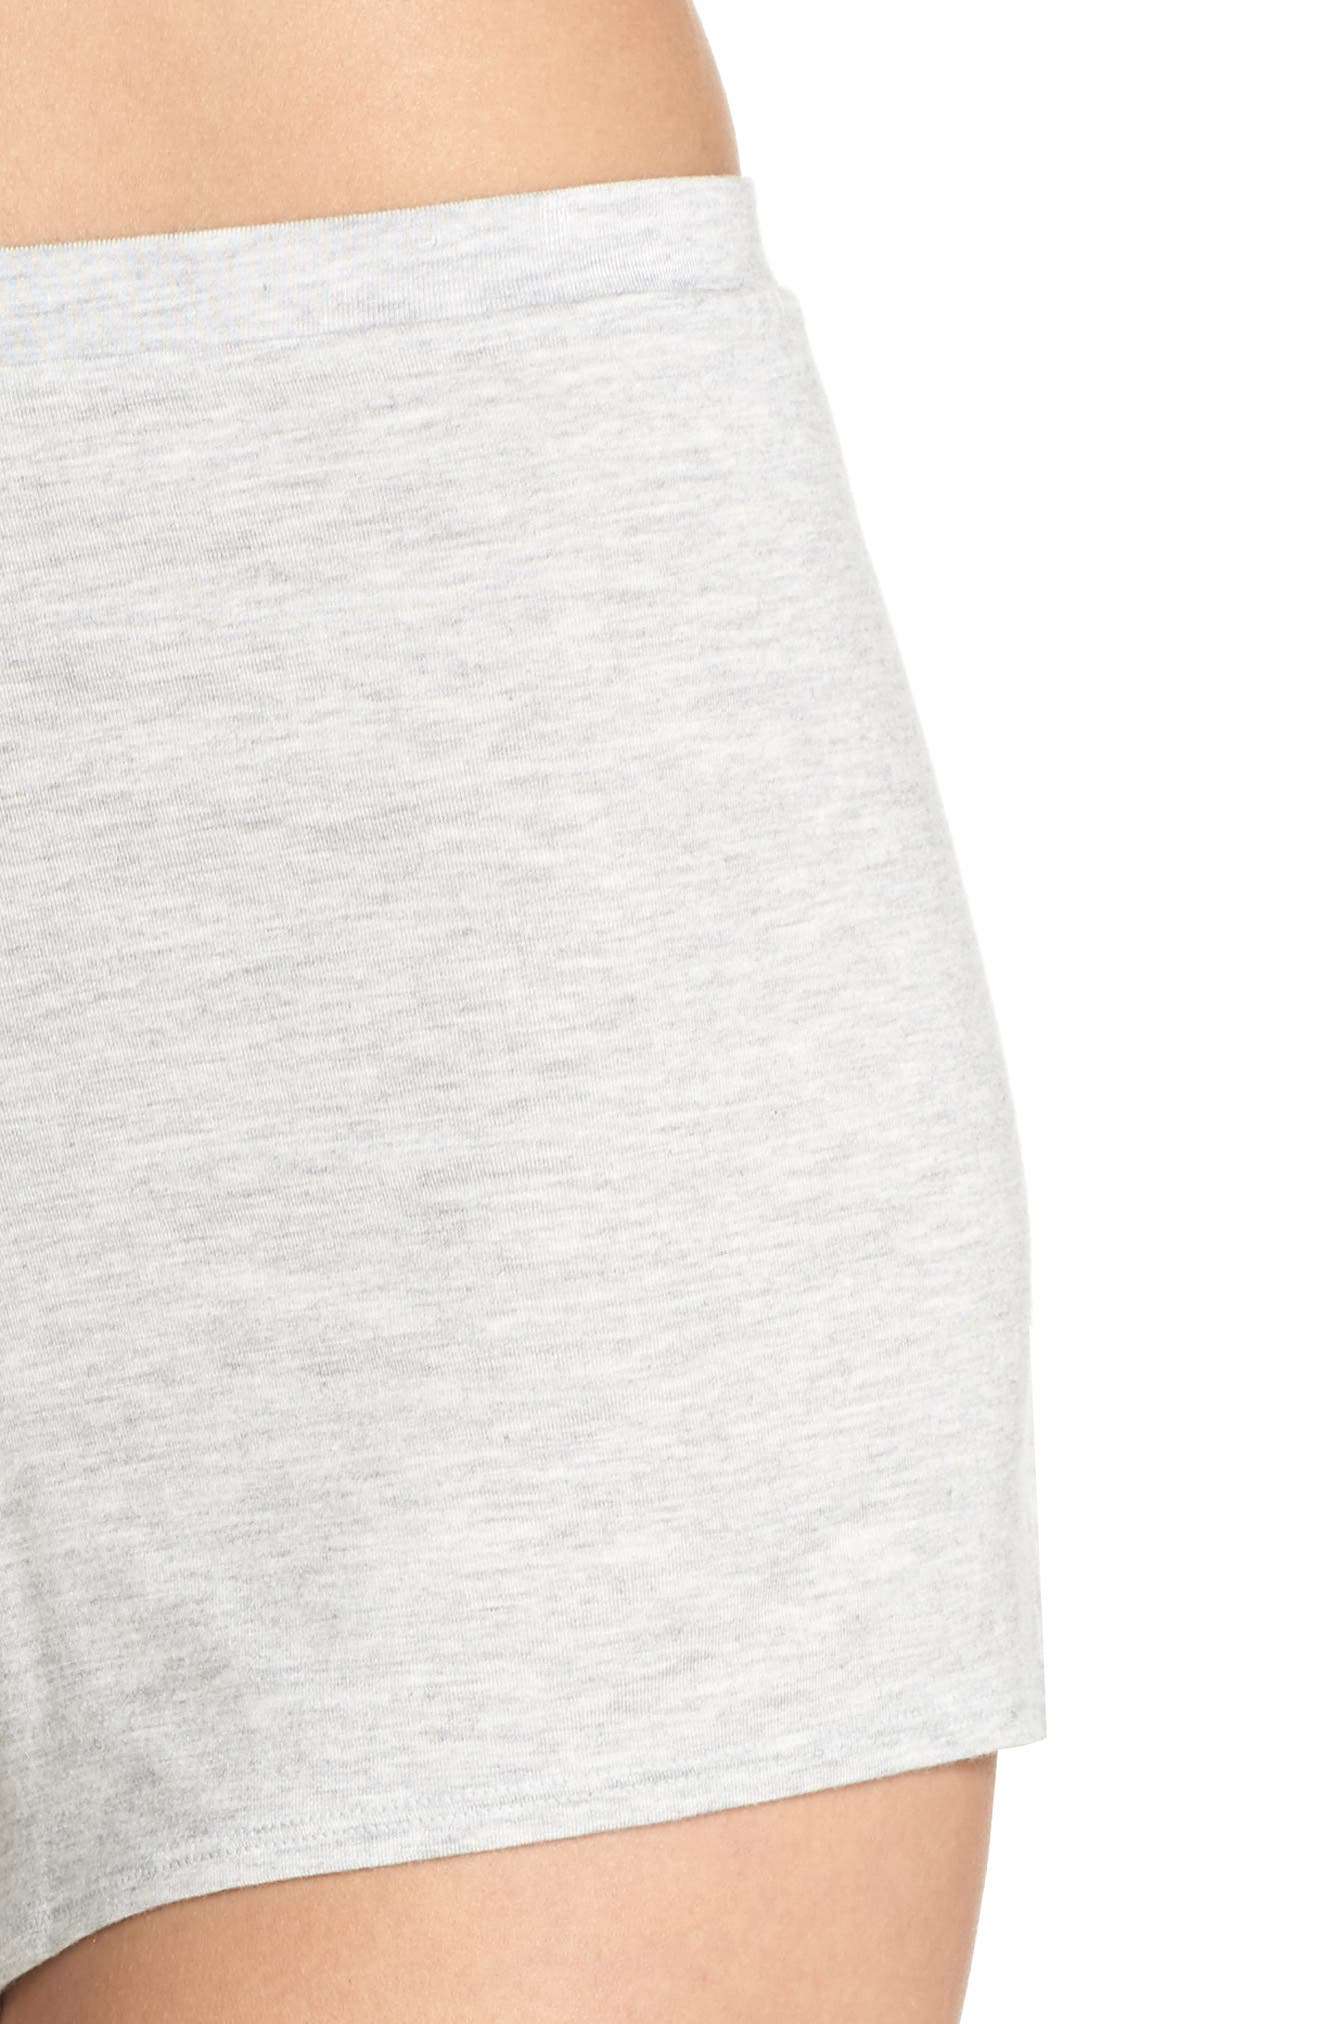 Undressed Pajama Shorts,                             Alternate thumbnail 6, color,                             Silver